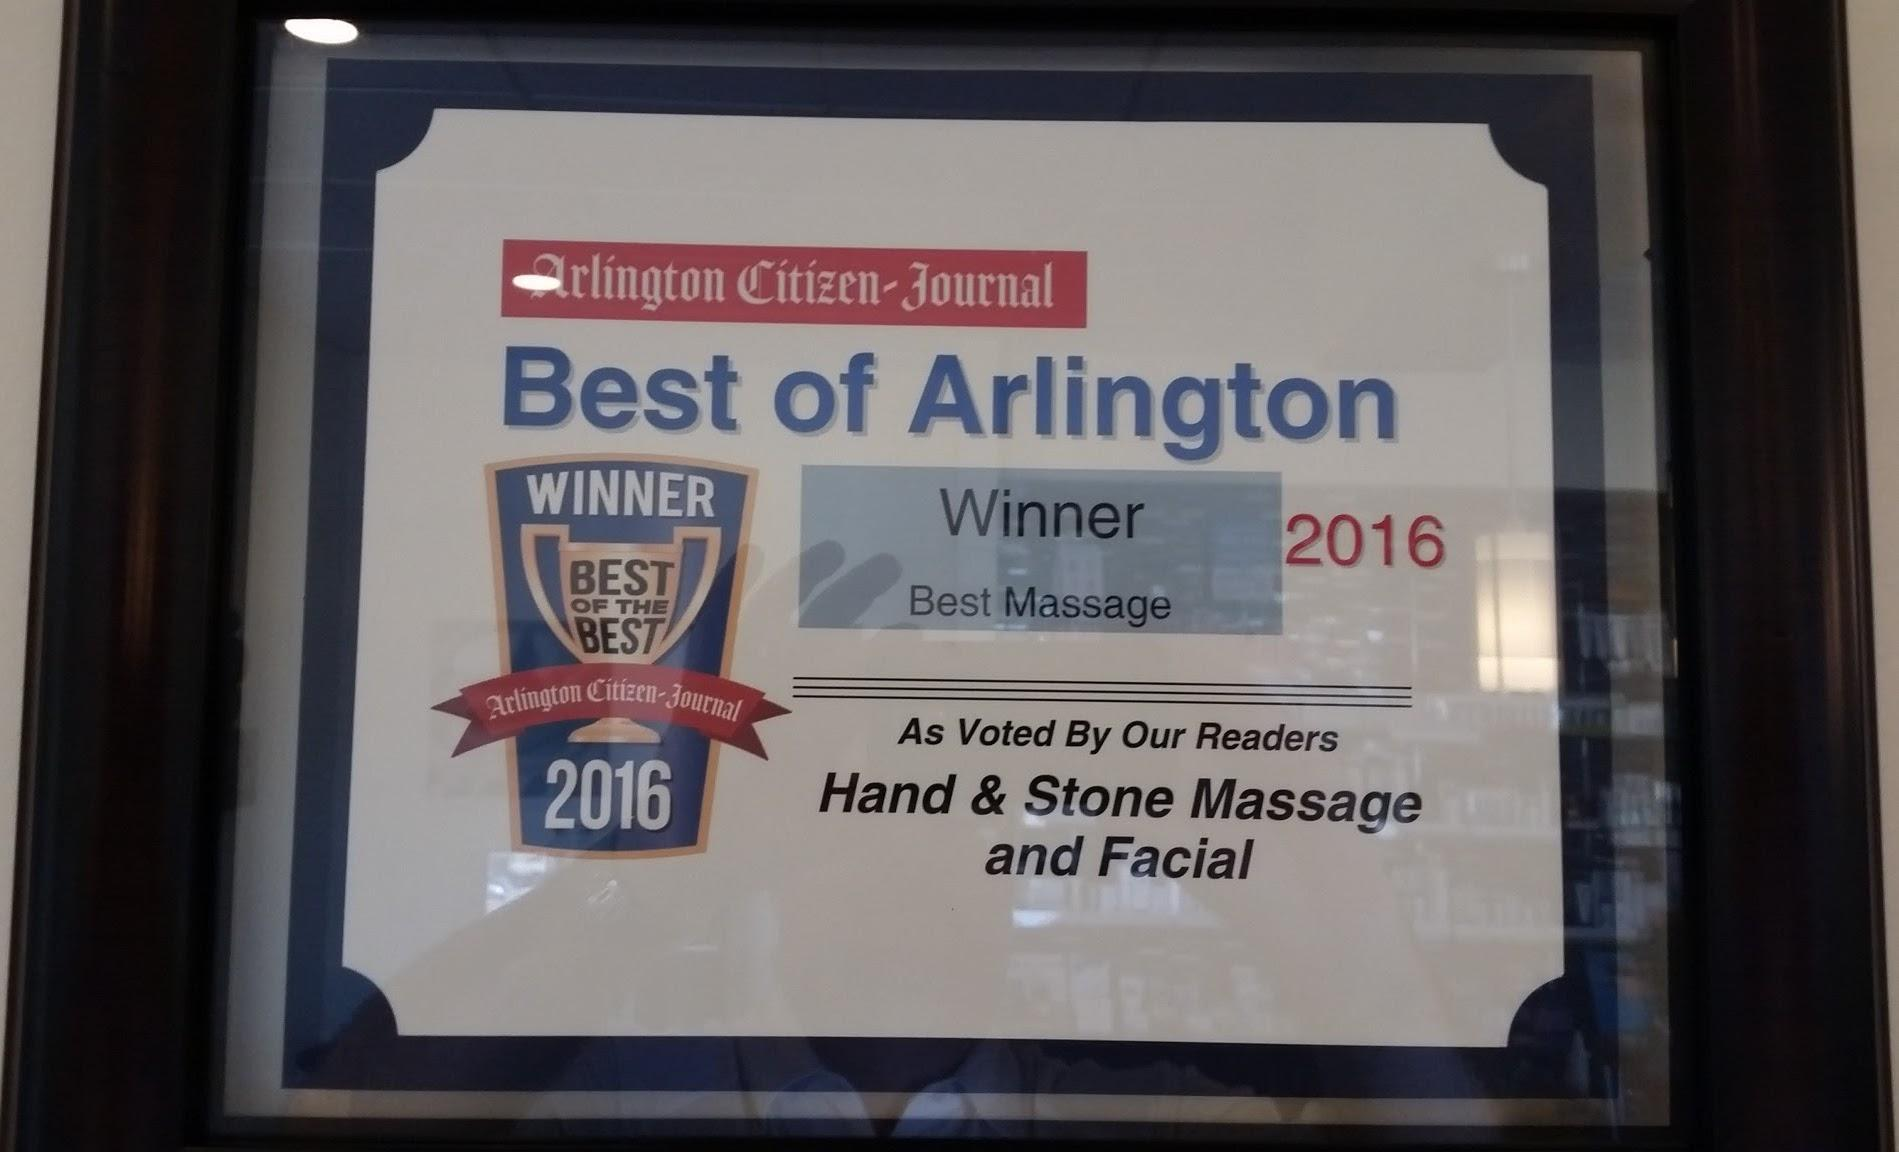 Voted best of Arlington